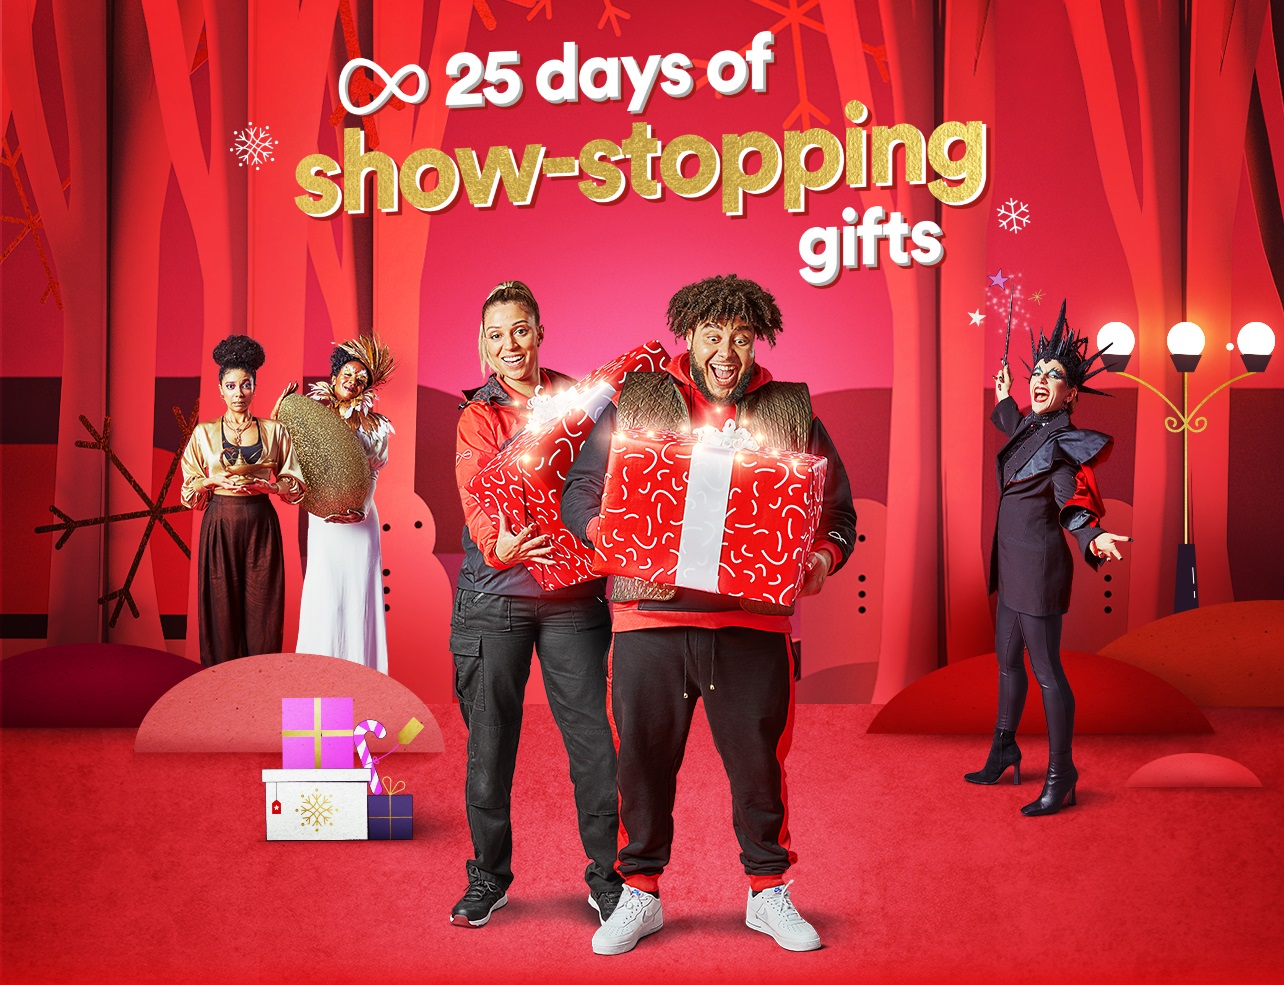 Virgin Media's 25 days of show-stopping gifts with Big Zuu and Lauren the engineer